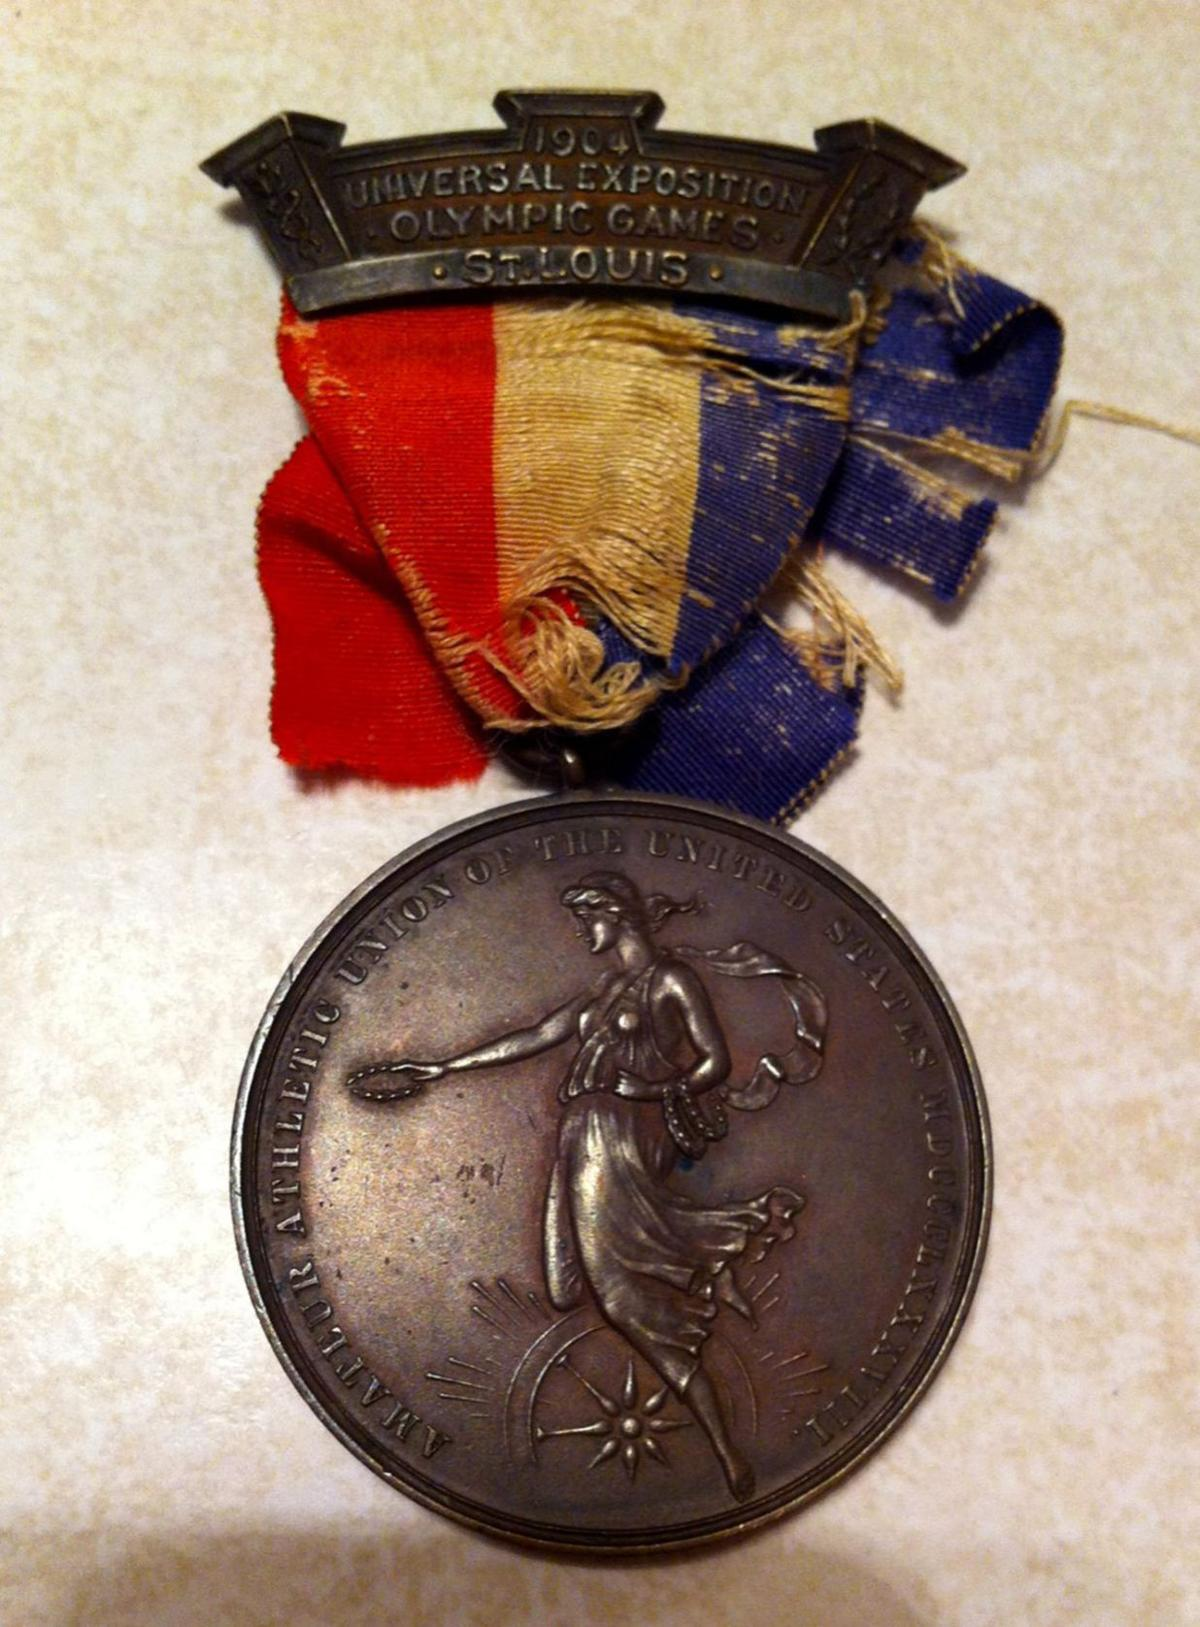 Bronze medal from the 1904 Olympics for freestyle wrestling